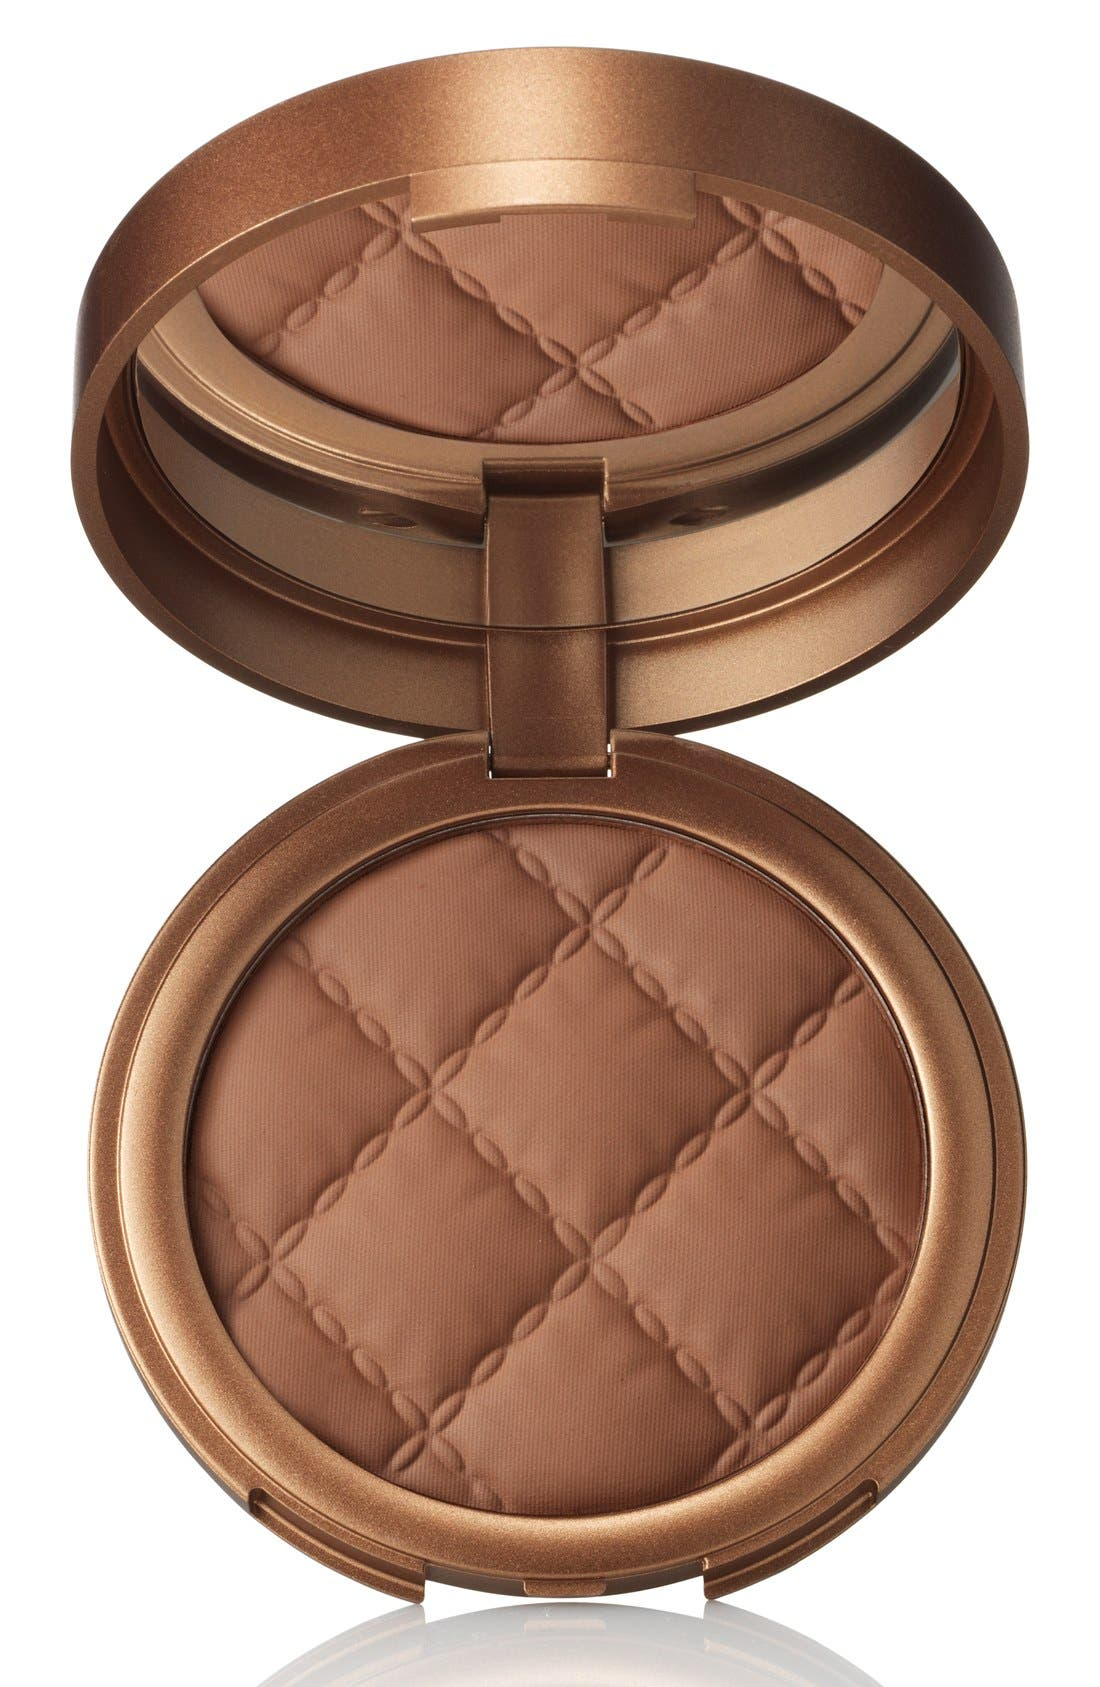 LAURA GELLER BEAUTY, Beach Matte Baked Hydrating Bronzer, Main thumbnail 1, color, 202